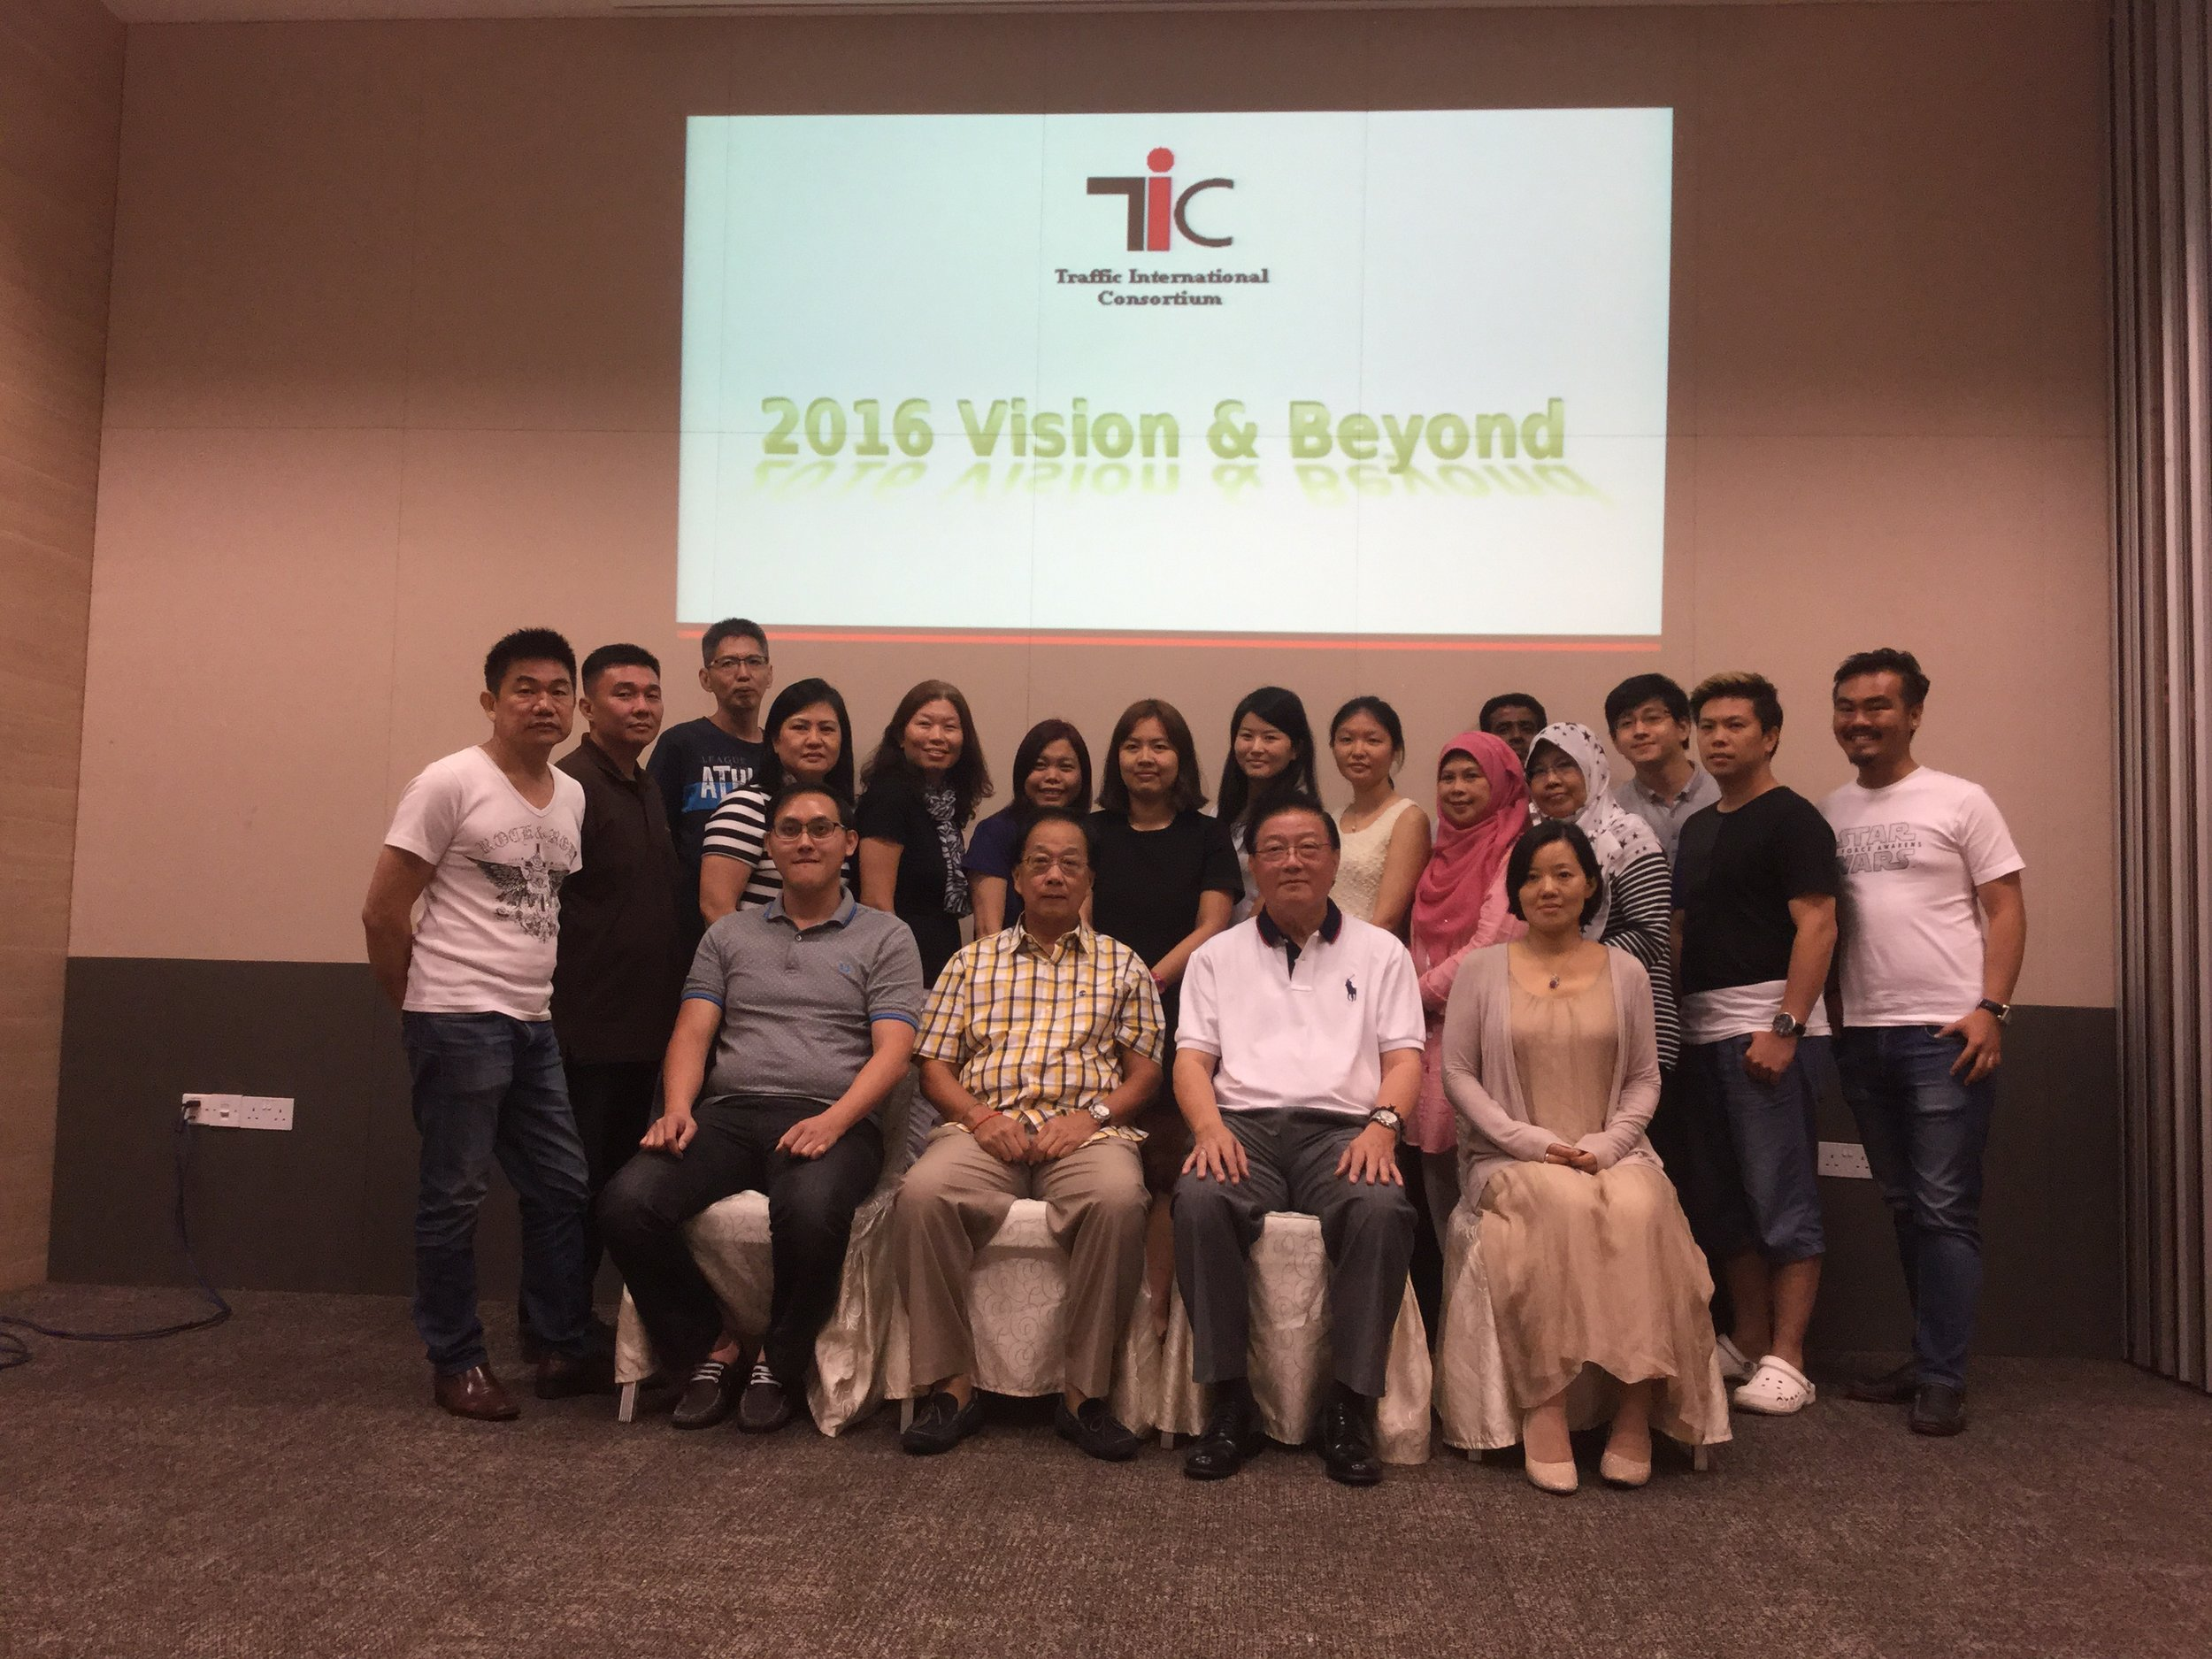 2016 Vision and Beyond